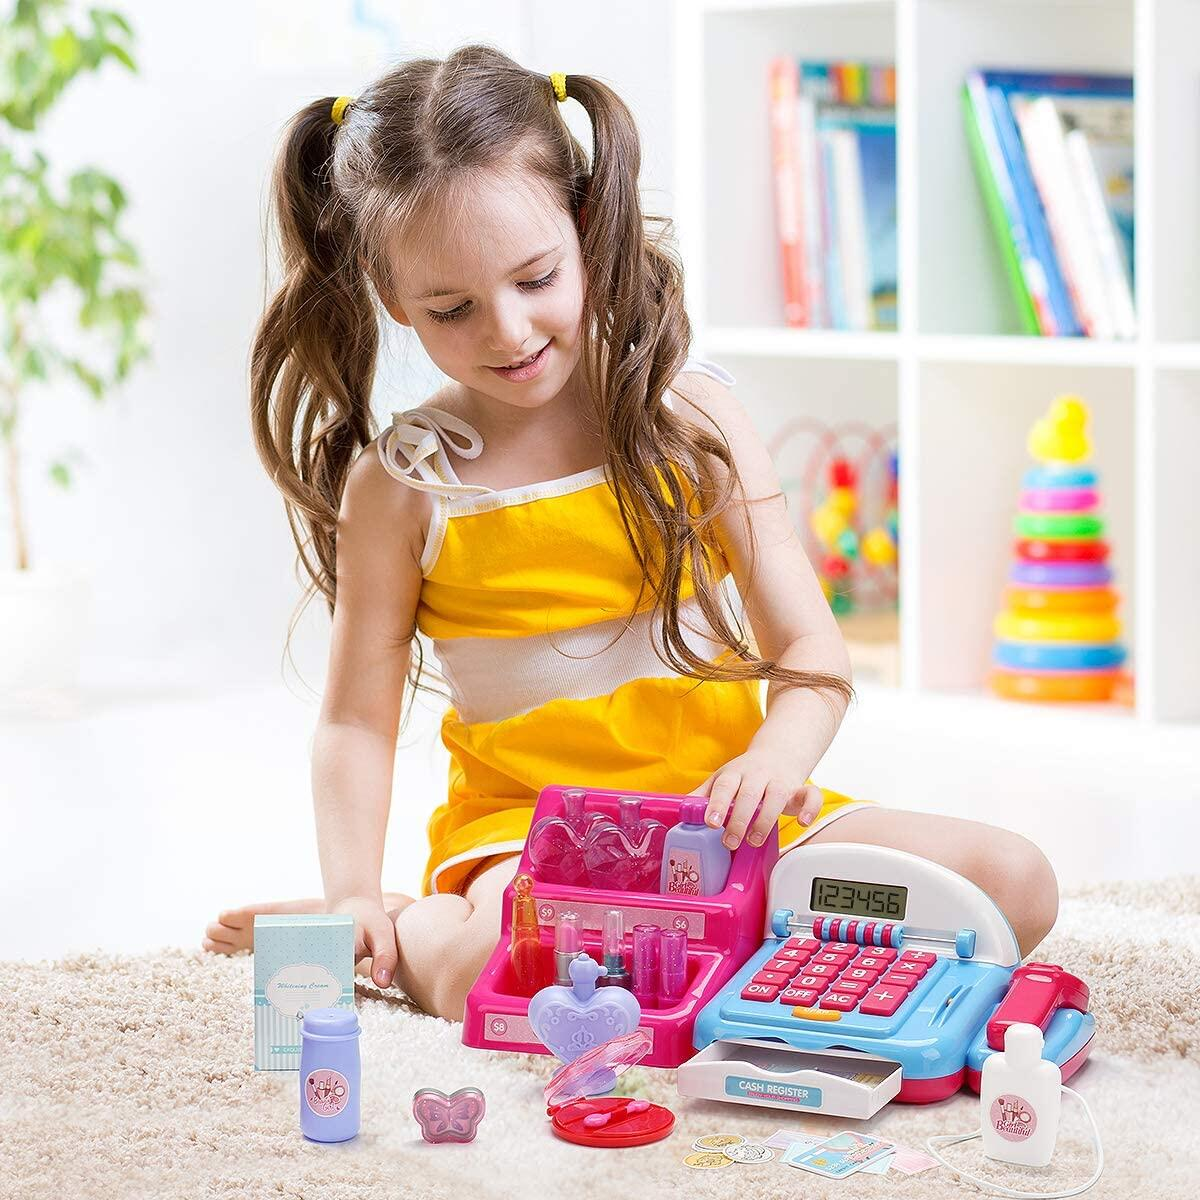 Shop N' Play Beauty Salon Cash Register Playset for Girls w/ Pretend Play Calculator, Money, Scanner, Credit Card & Makeup, Realistic Actions & Sounds, Educational Counting Toy for Kids 2-6 Years Old